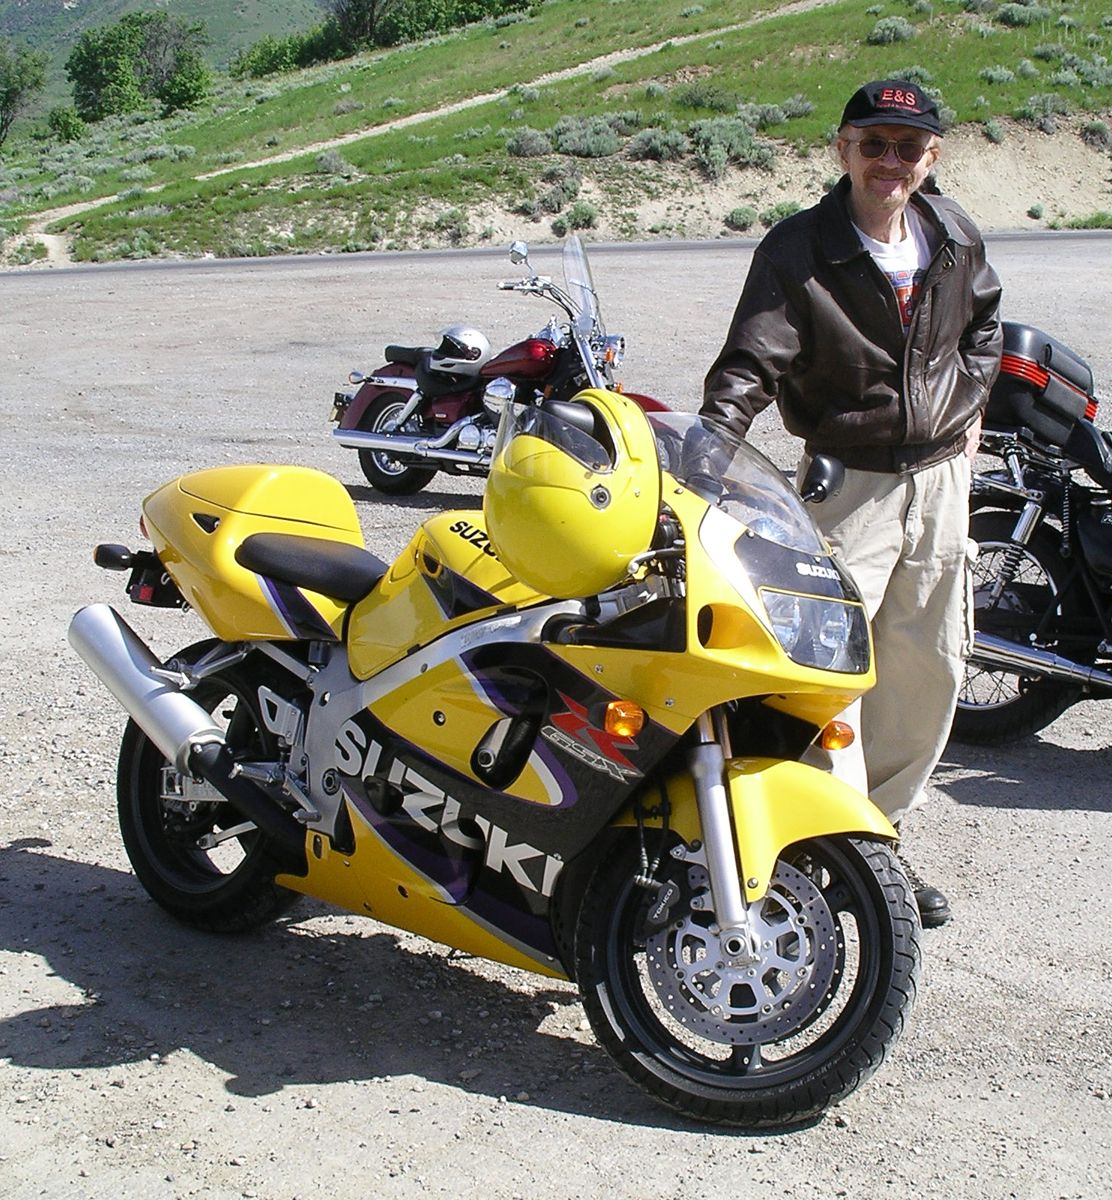 Vehicle 112 - Suzuki GSXR600 5-18-01 - Always wanted a